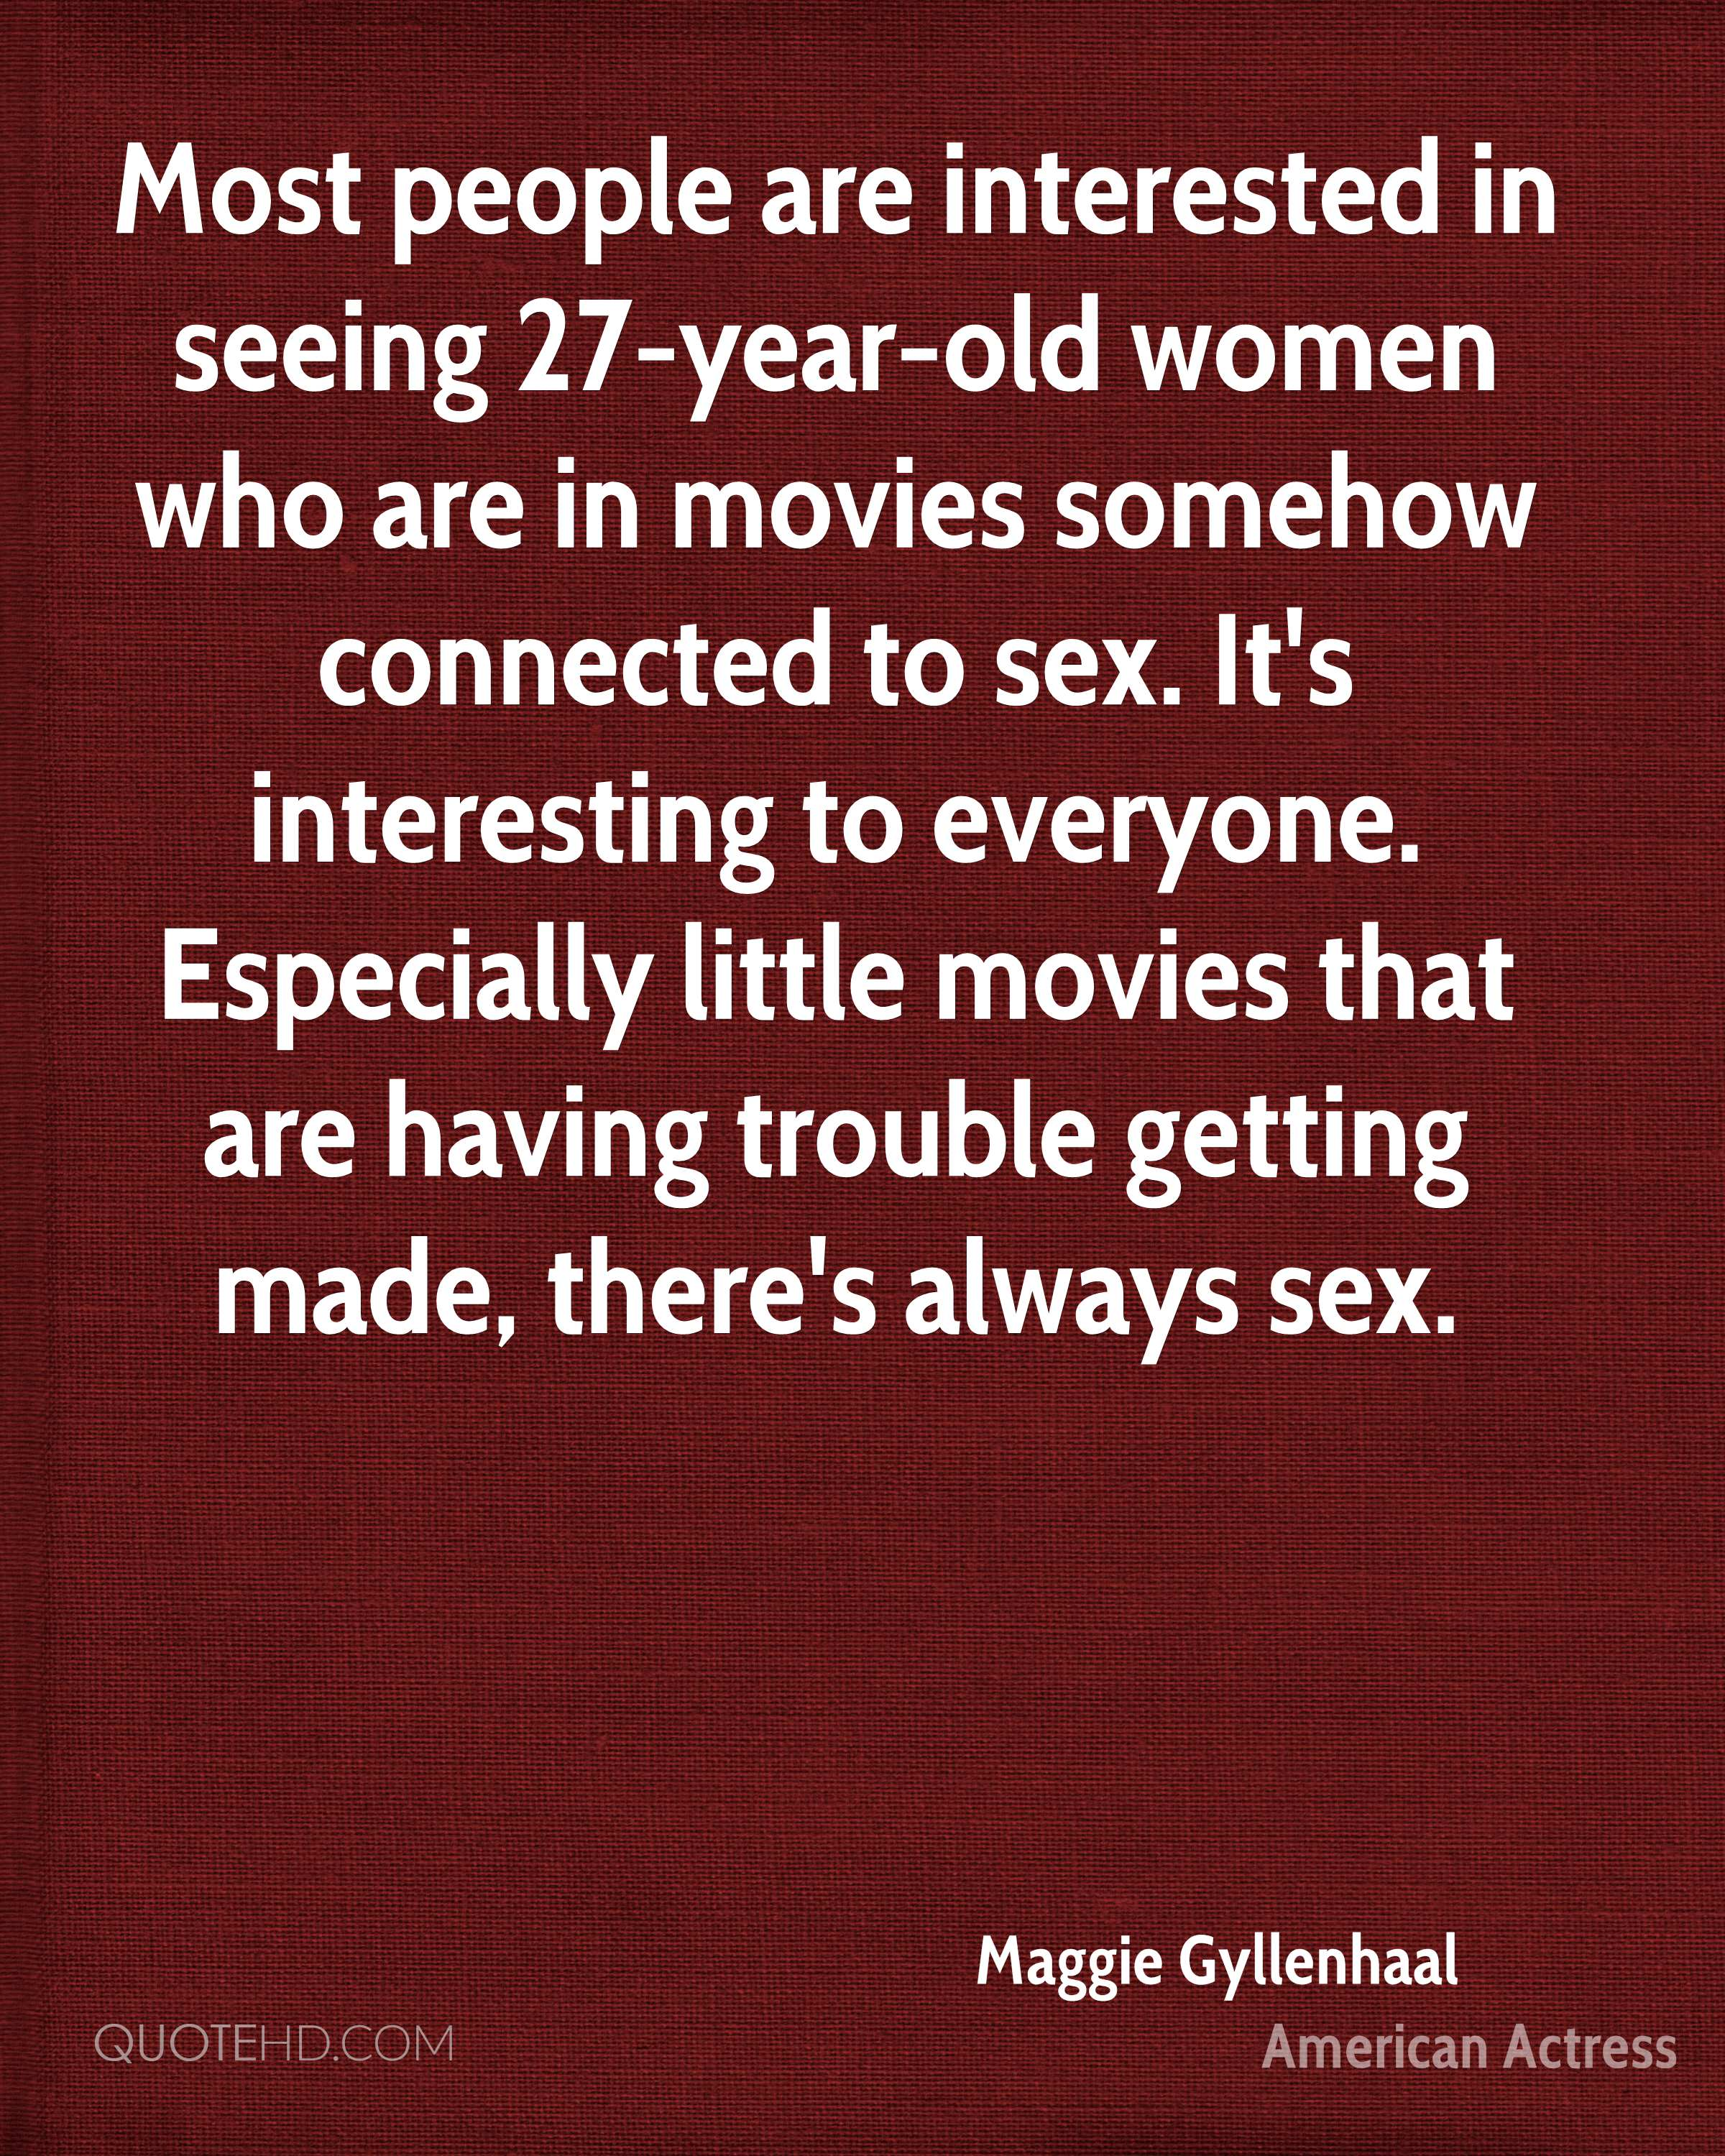 Most people are interested in seeing 27 year old women who are in movies